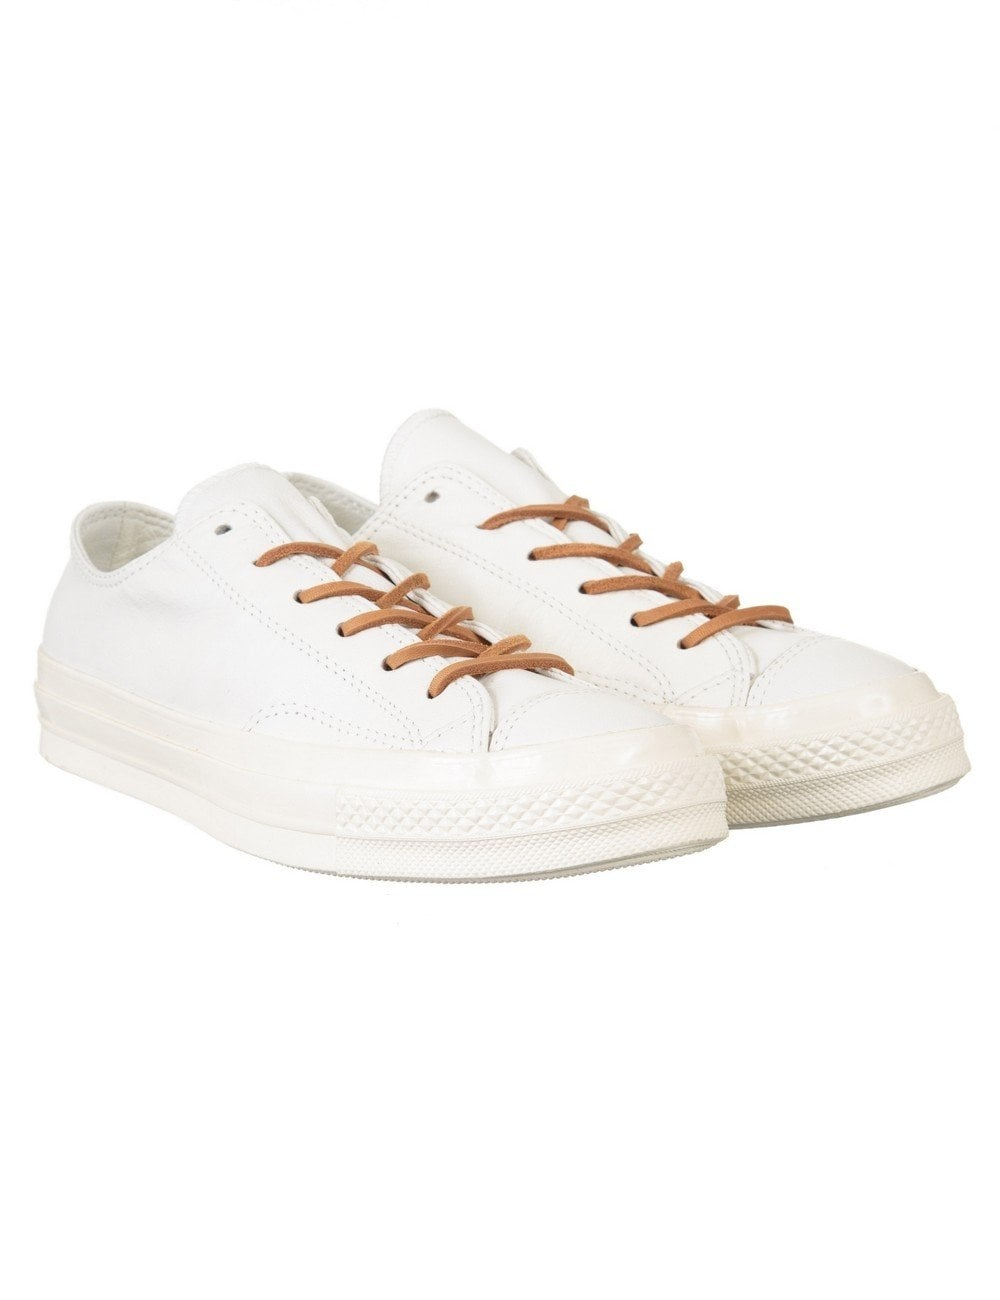 7a7c86e9f84055 Converse Chuck Taylor 70s Ox Leather Shoes - Egret Tan - Footwear ...